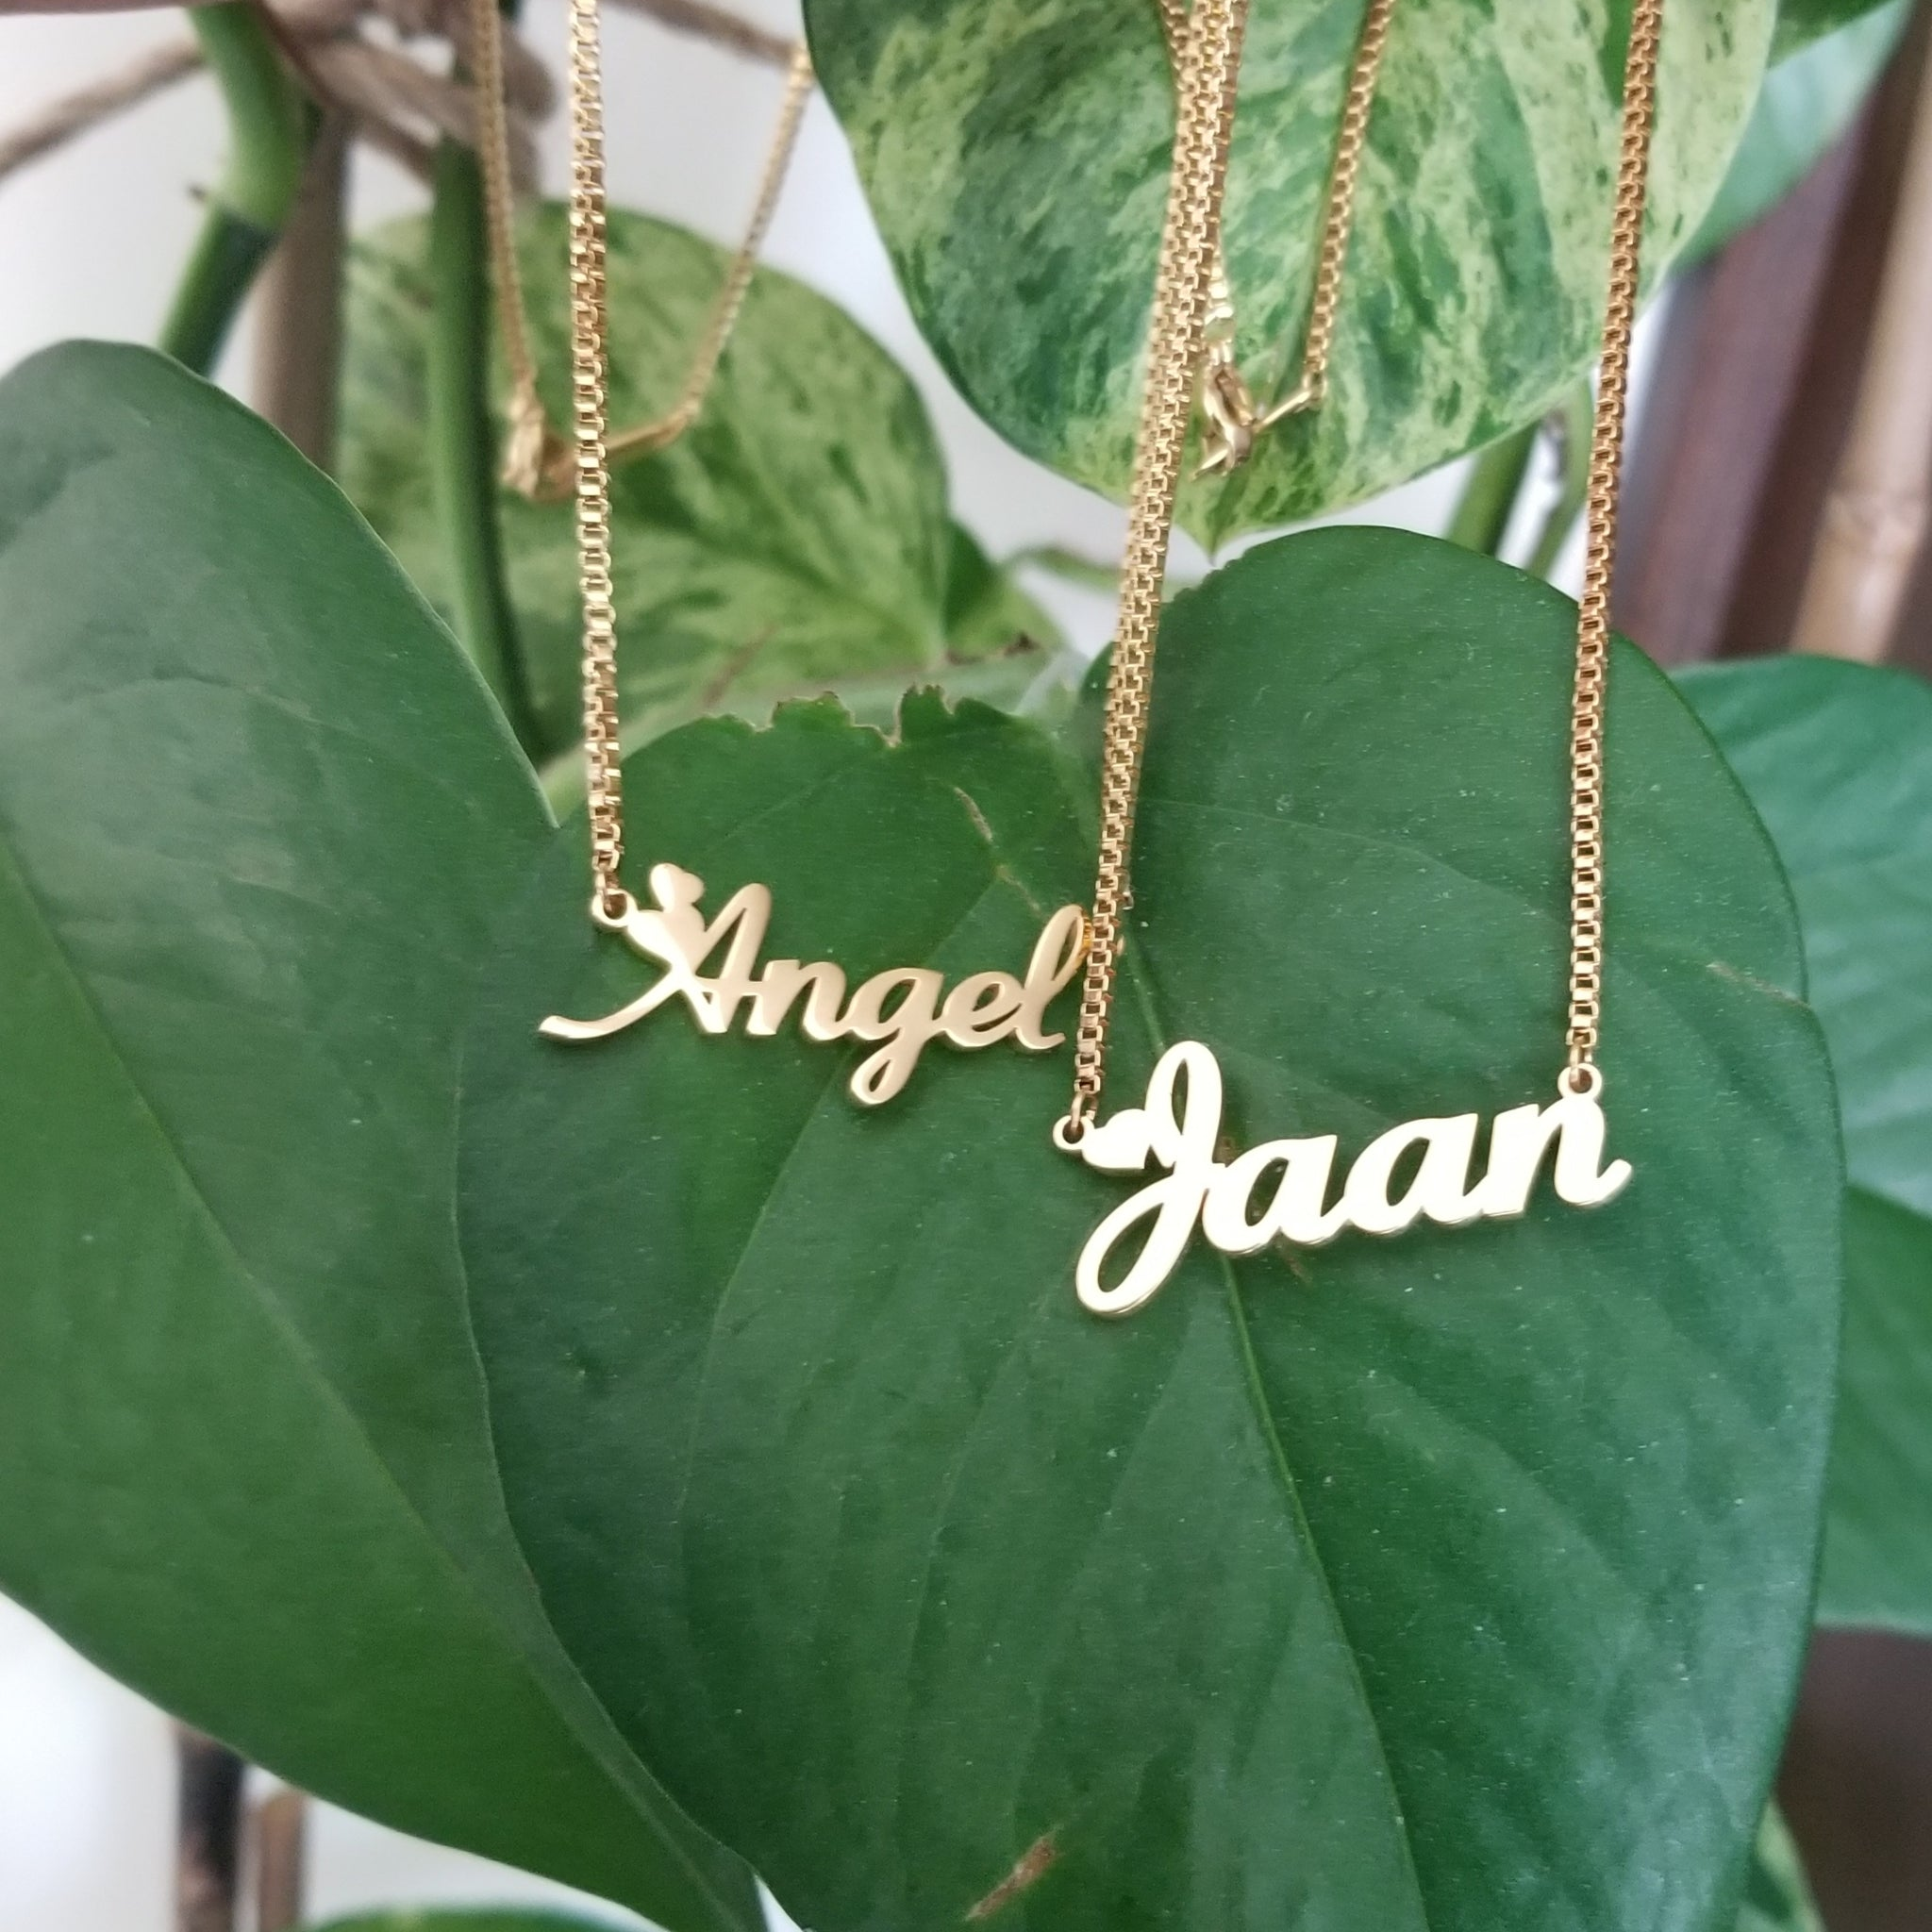 Name necklace with Box chain